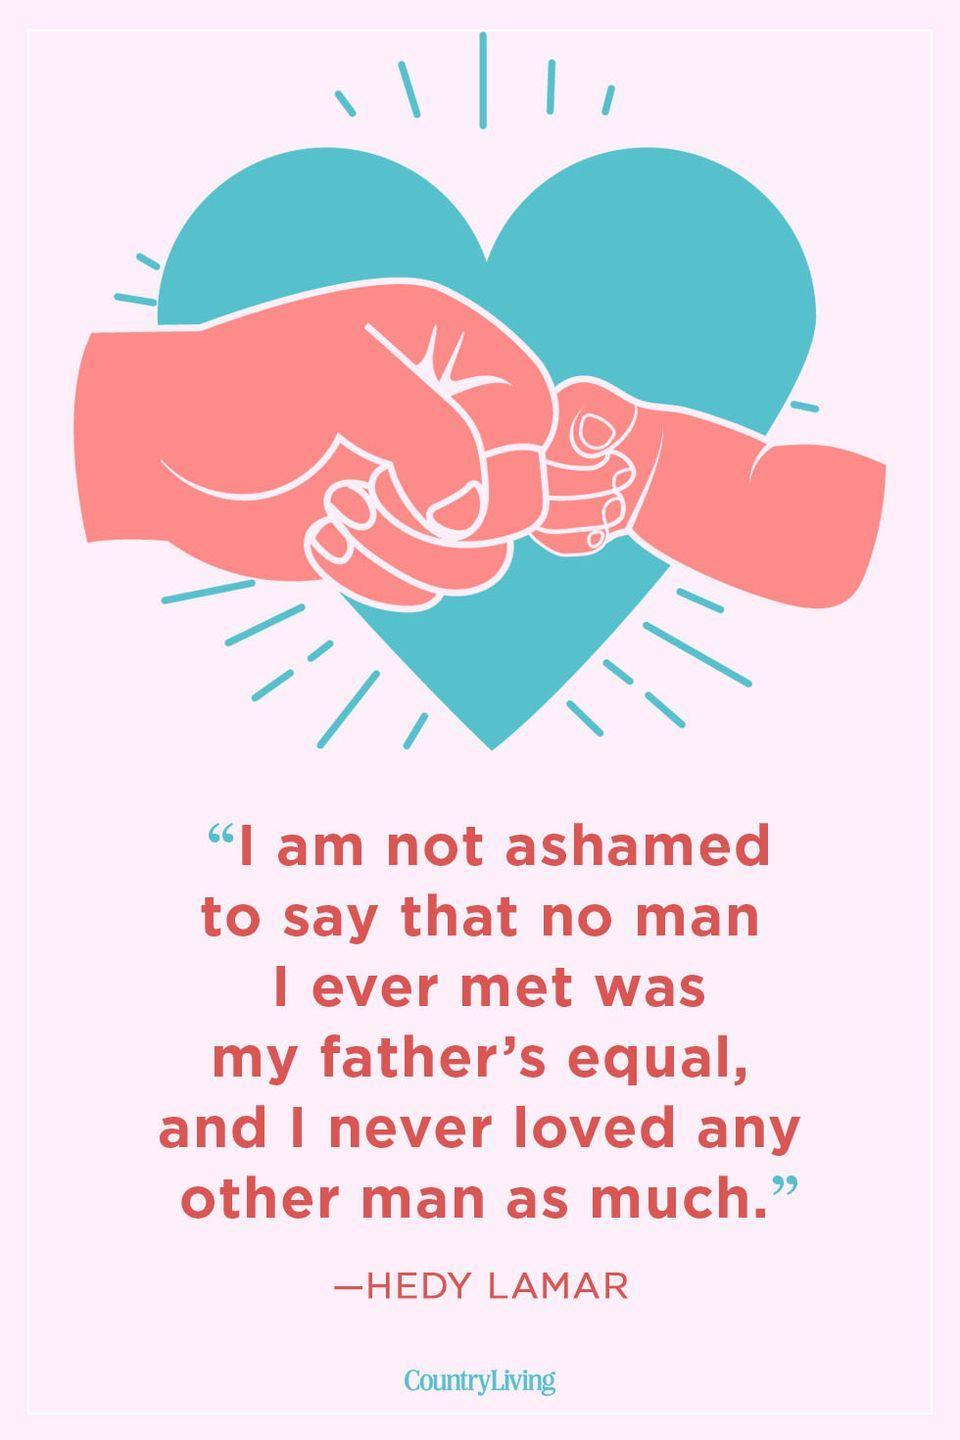 """<p>""""I am not ashamed to say that no man I ever met was my father's equal, and I never loved any other man as much.""""</p>"""